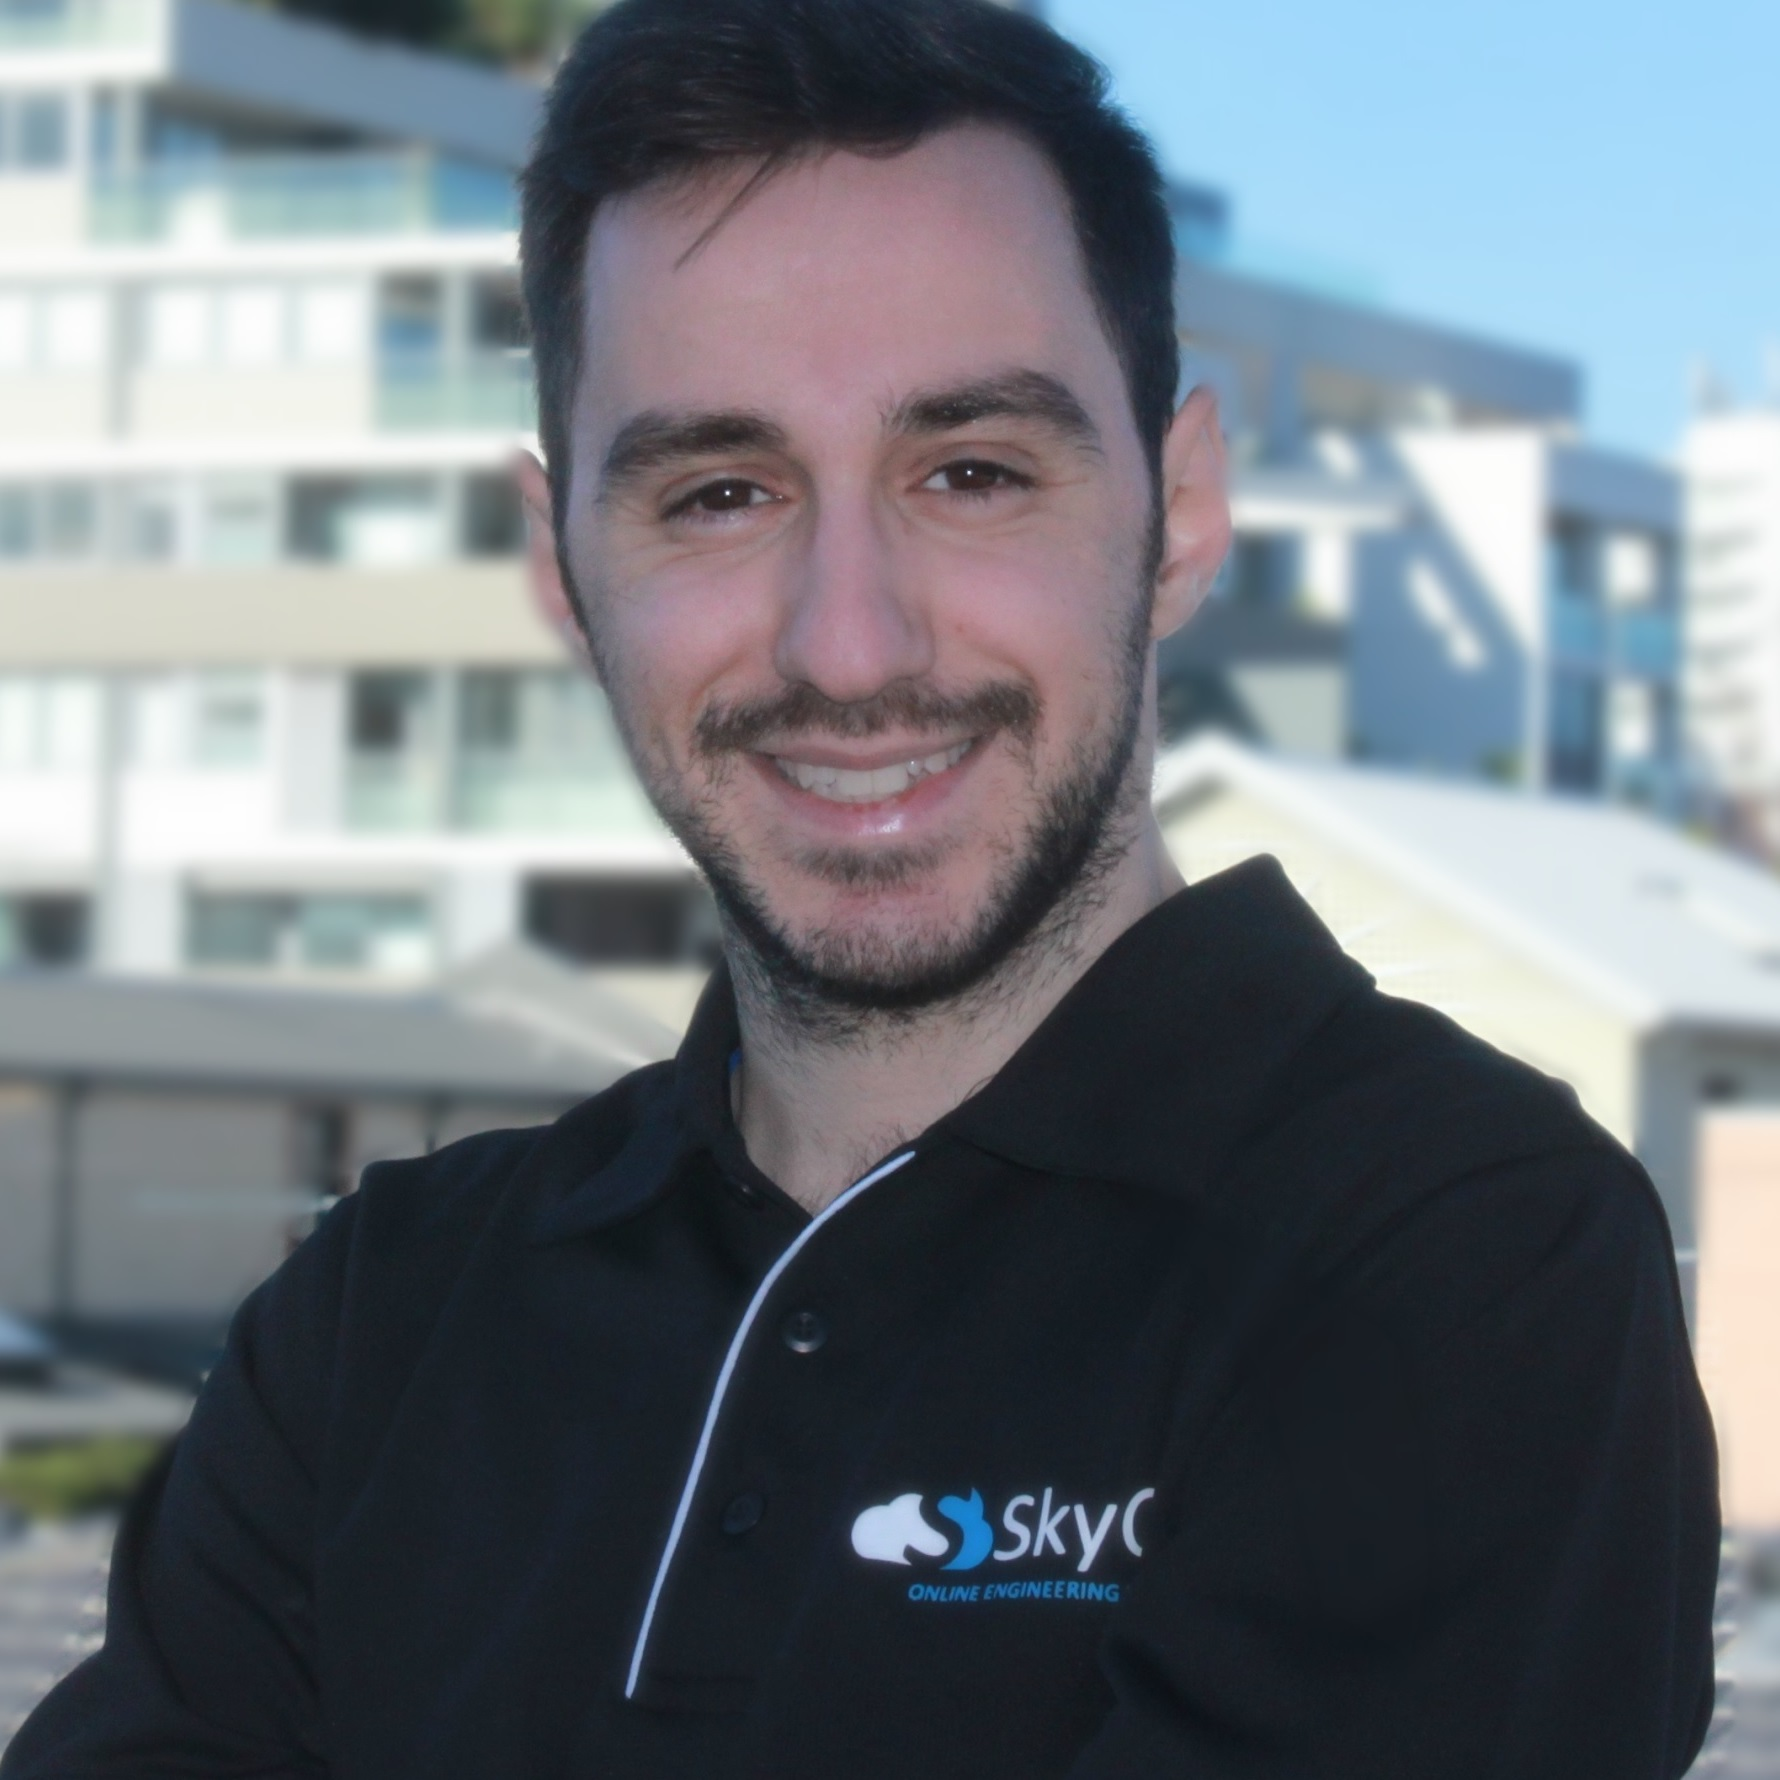 Paul Comino CTO and Co-Founder of SkyCiv